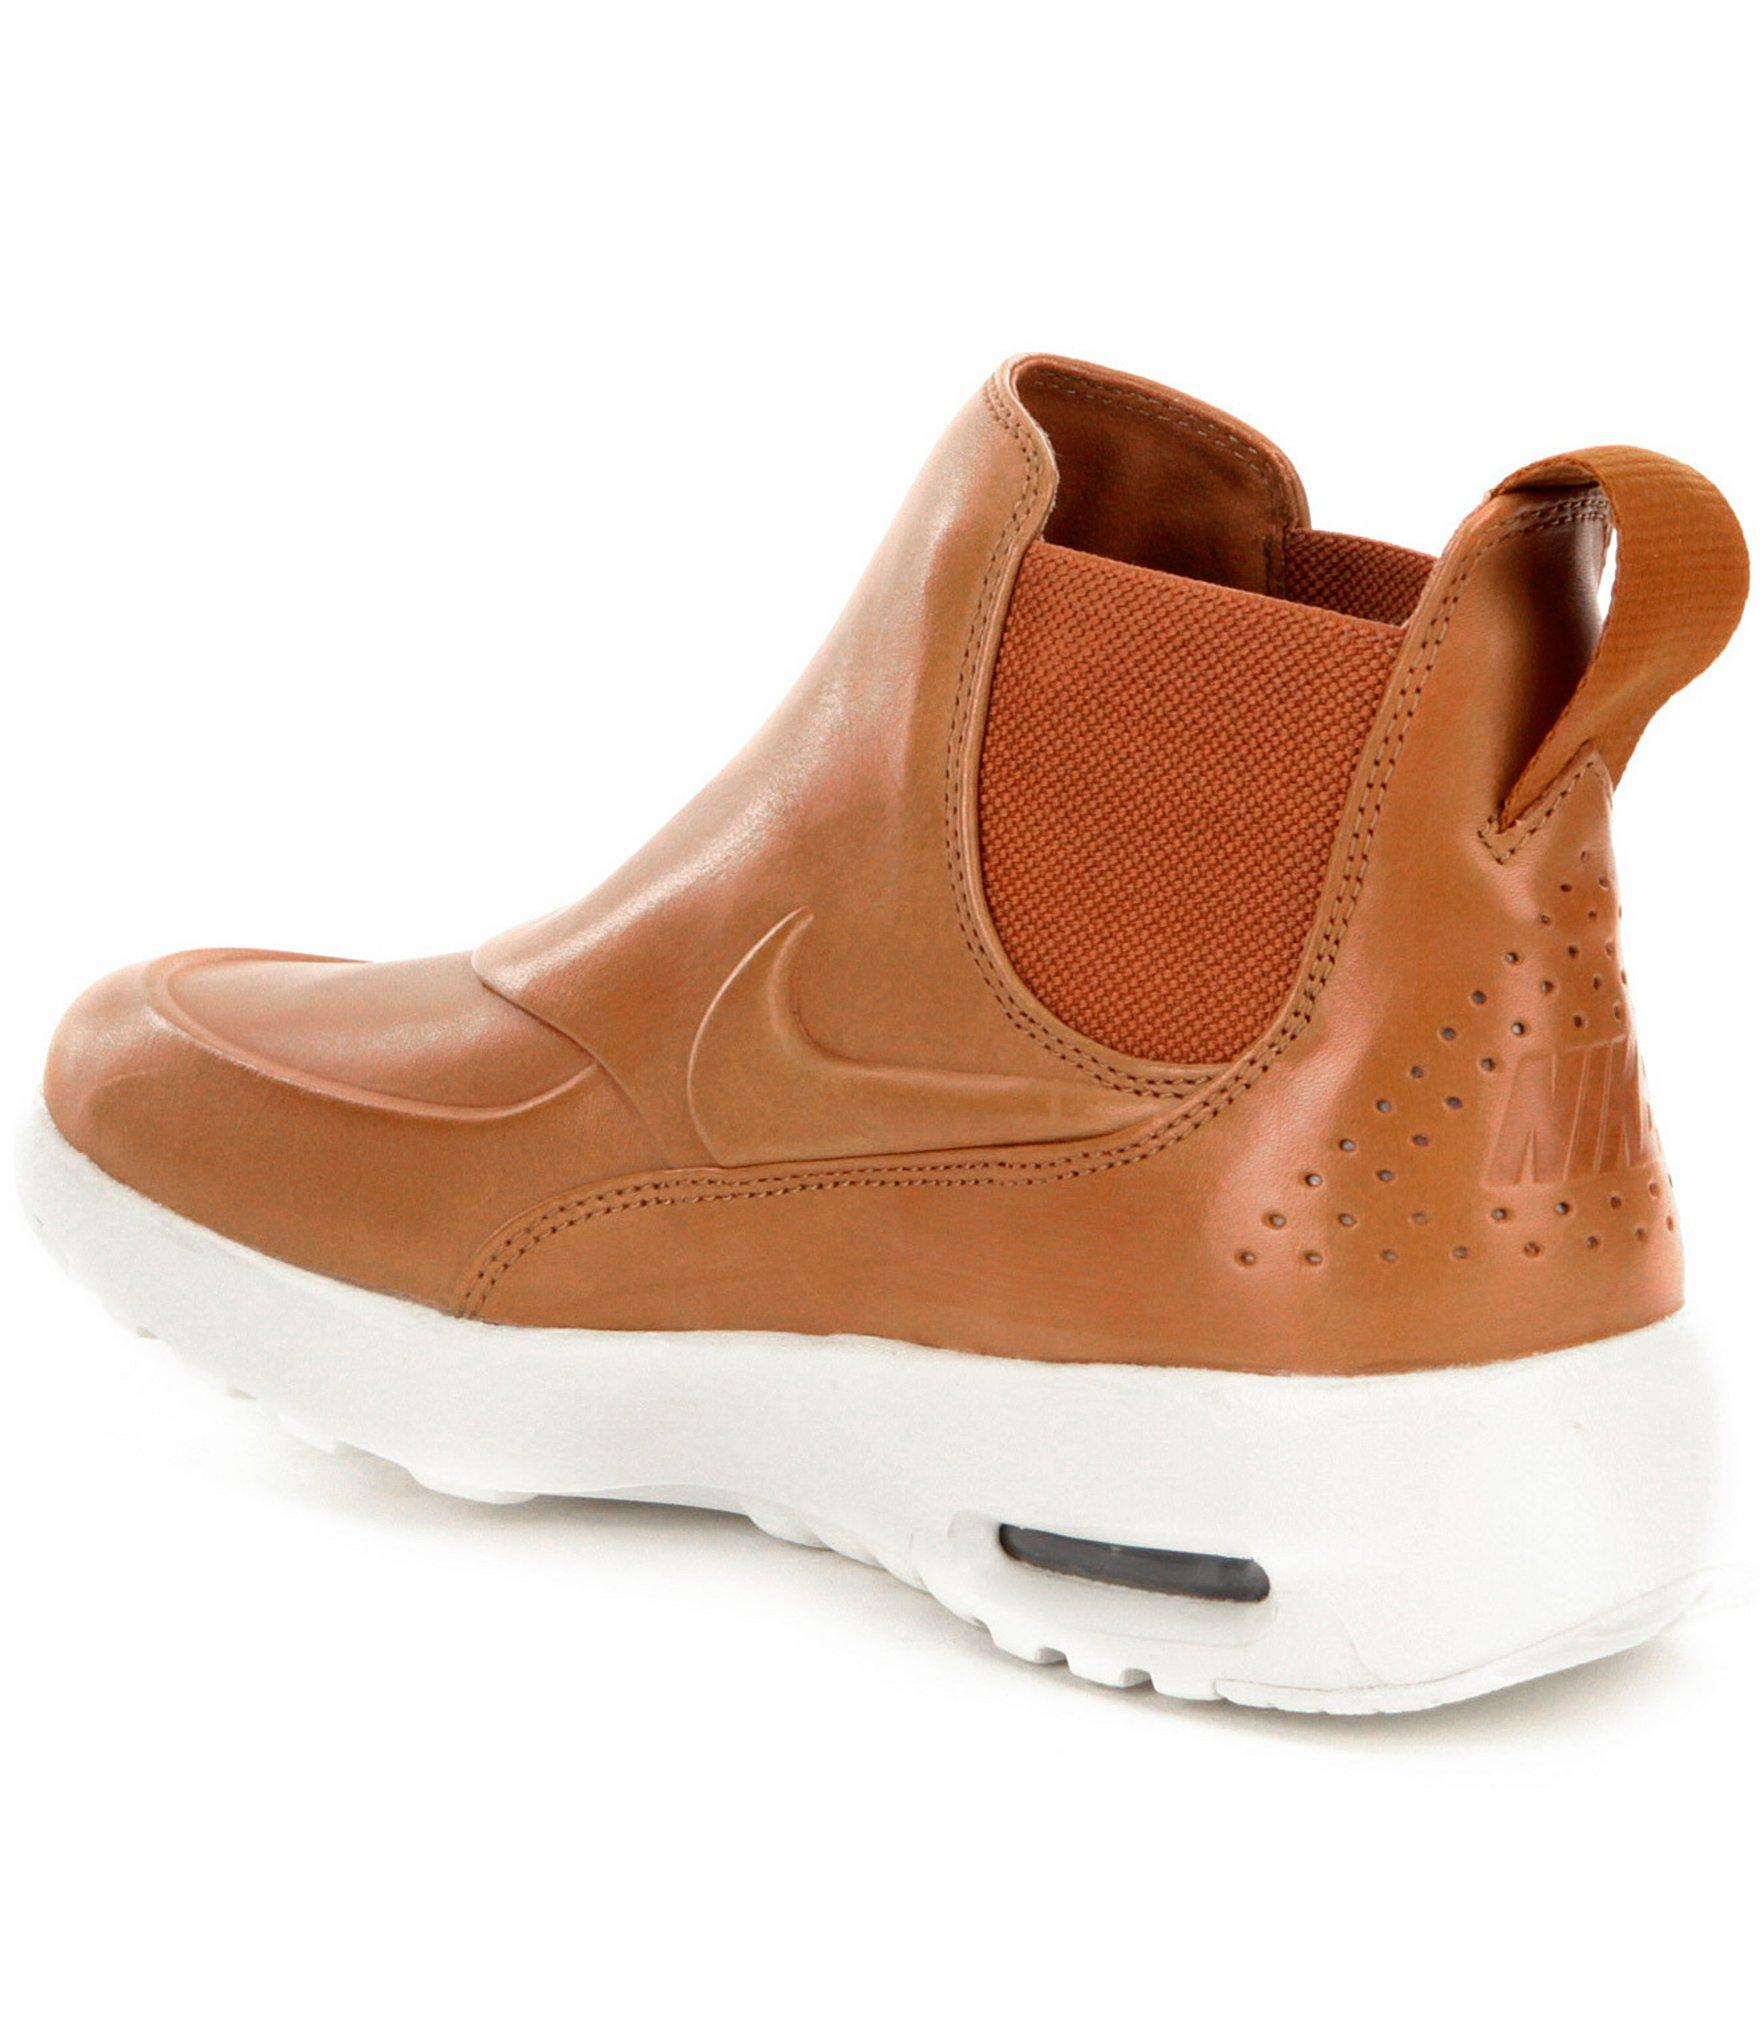 f913506fa8 Nike Women ́s Air Max Thea Mid-top Shoes in Brown - Lyst